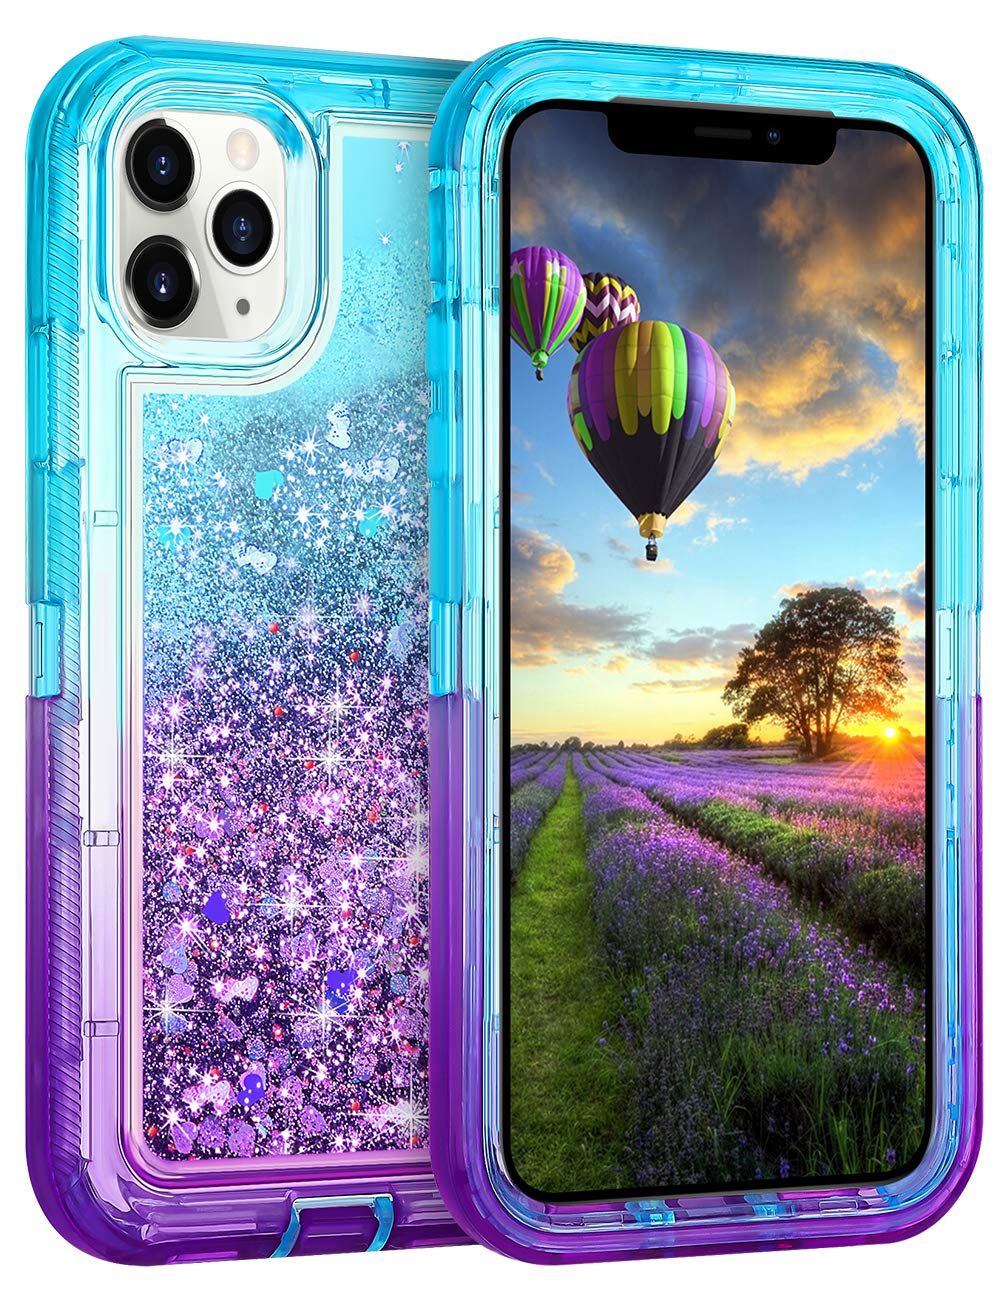 Coolden Case for iPhone 11 Pro MAX Cases Protective Glitter Case for Women Girls Cute Bling Sparkle Heavy Duty Hard Shell Shockproof TPU Case for 2019 Release 6.5 Inches iPhone 11 Pro MAX, Aqua Purple